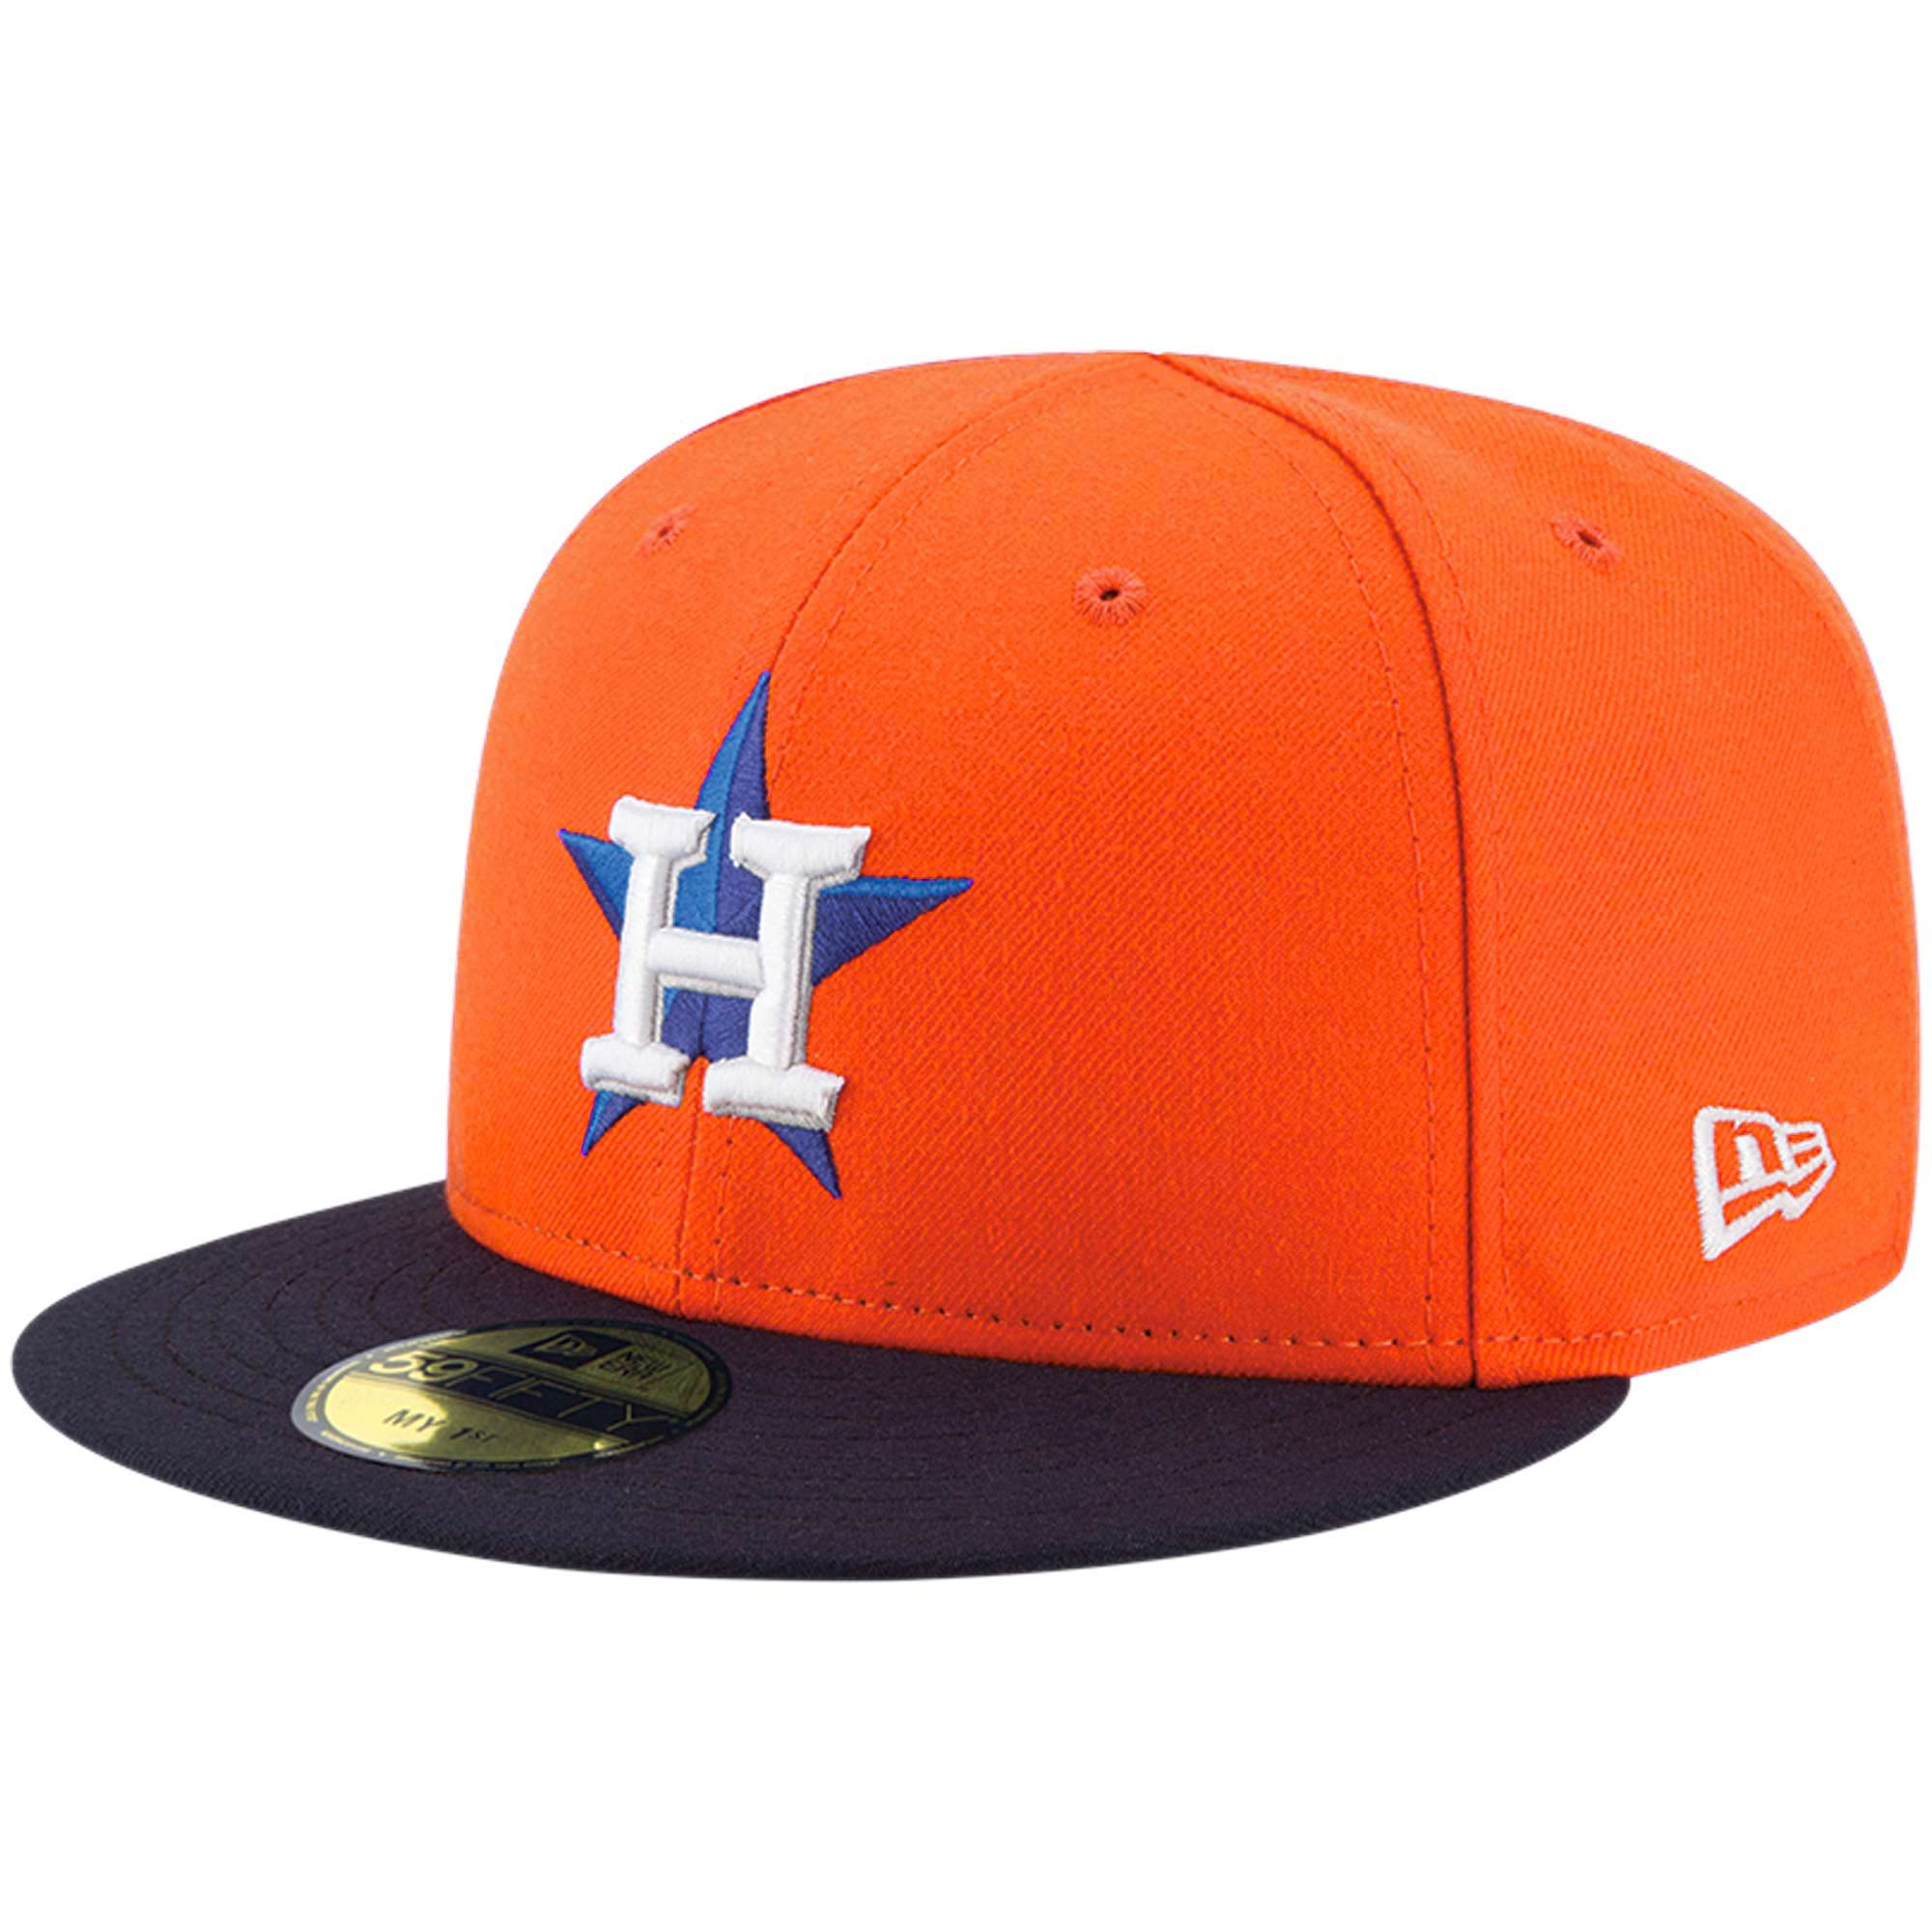 Houston Astros New Era Infant Authentic Collection On-Field My First 59FIFTY Fitted Hat - Orange - 6